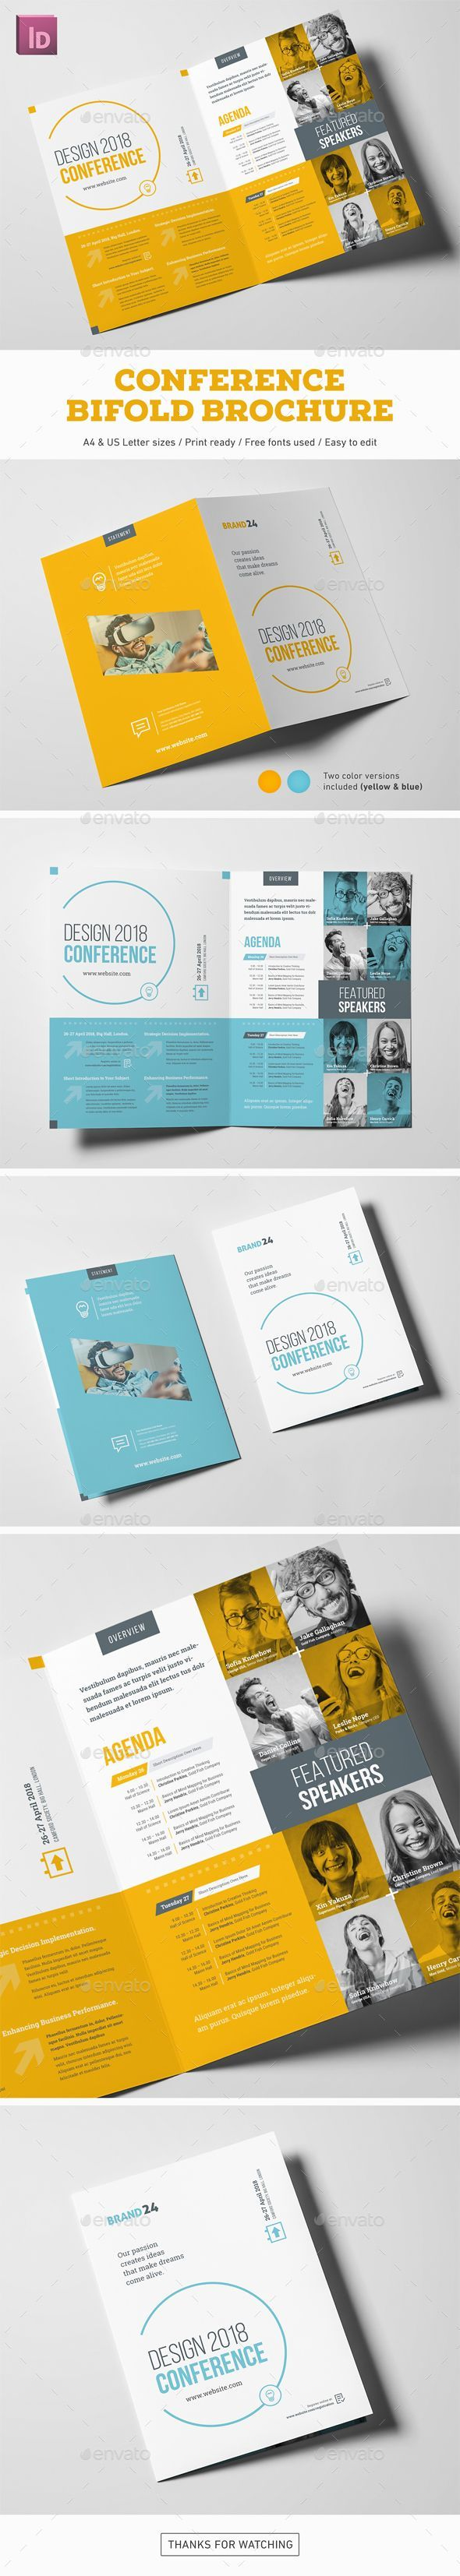 Agenda Sample Format Mesmerizing Image Result For Corporate Branded Agenda Template  Dance For A .